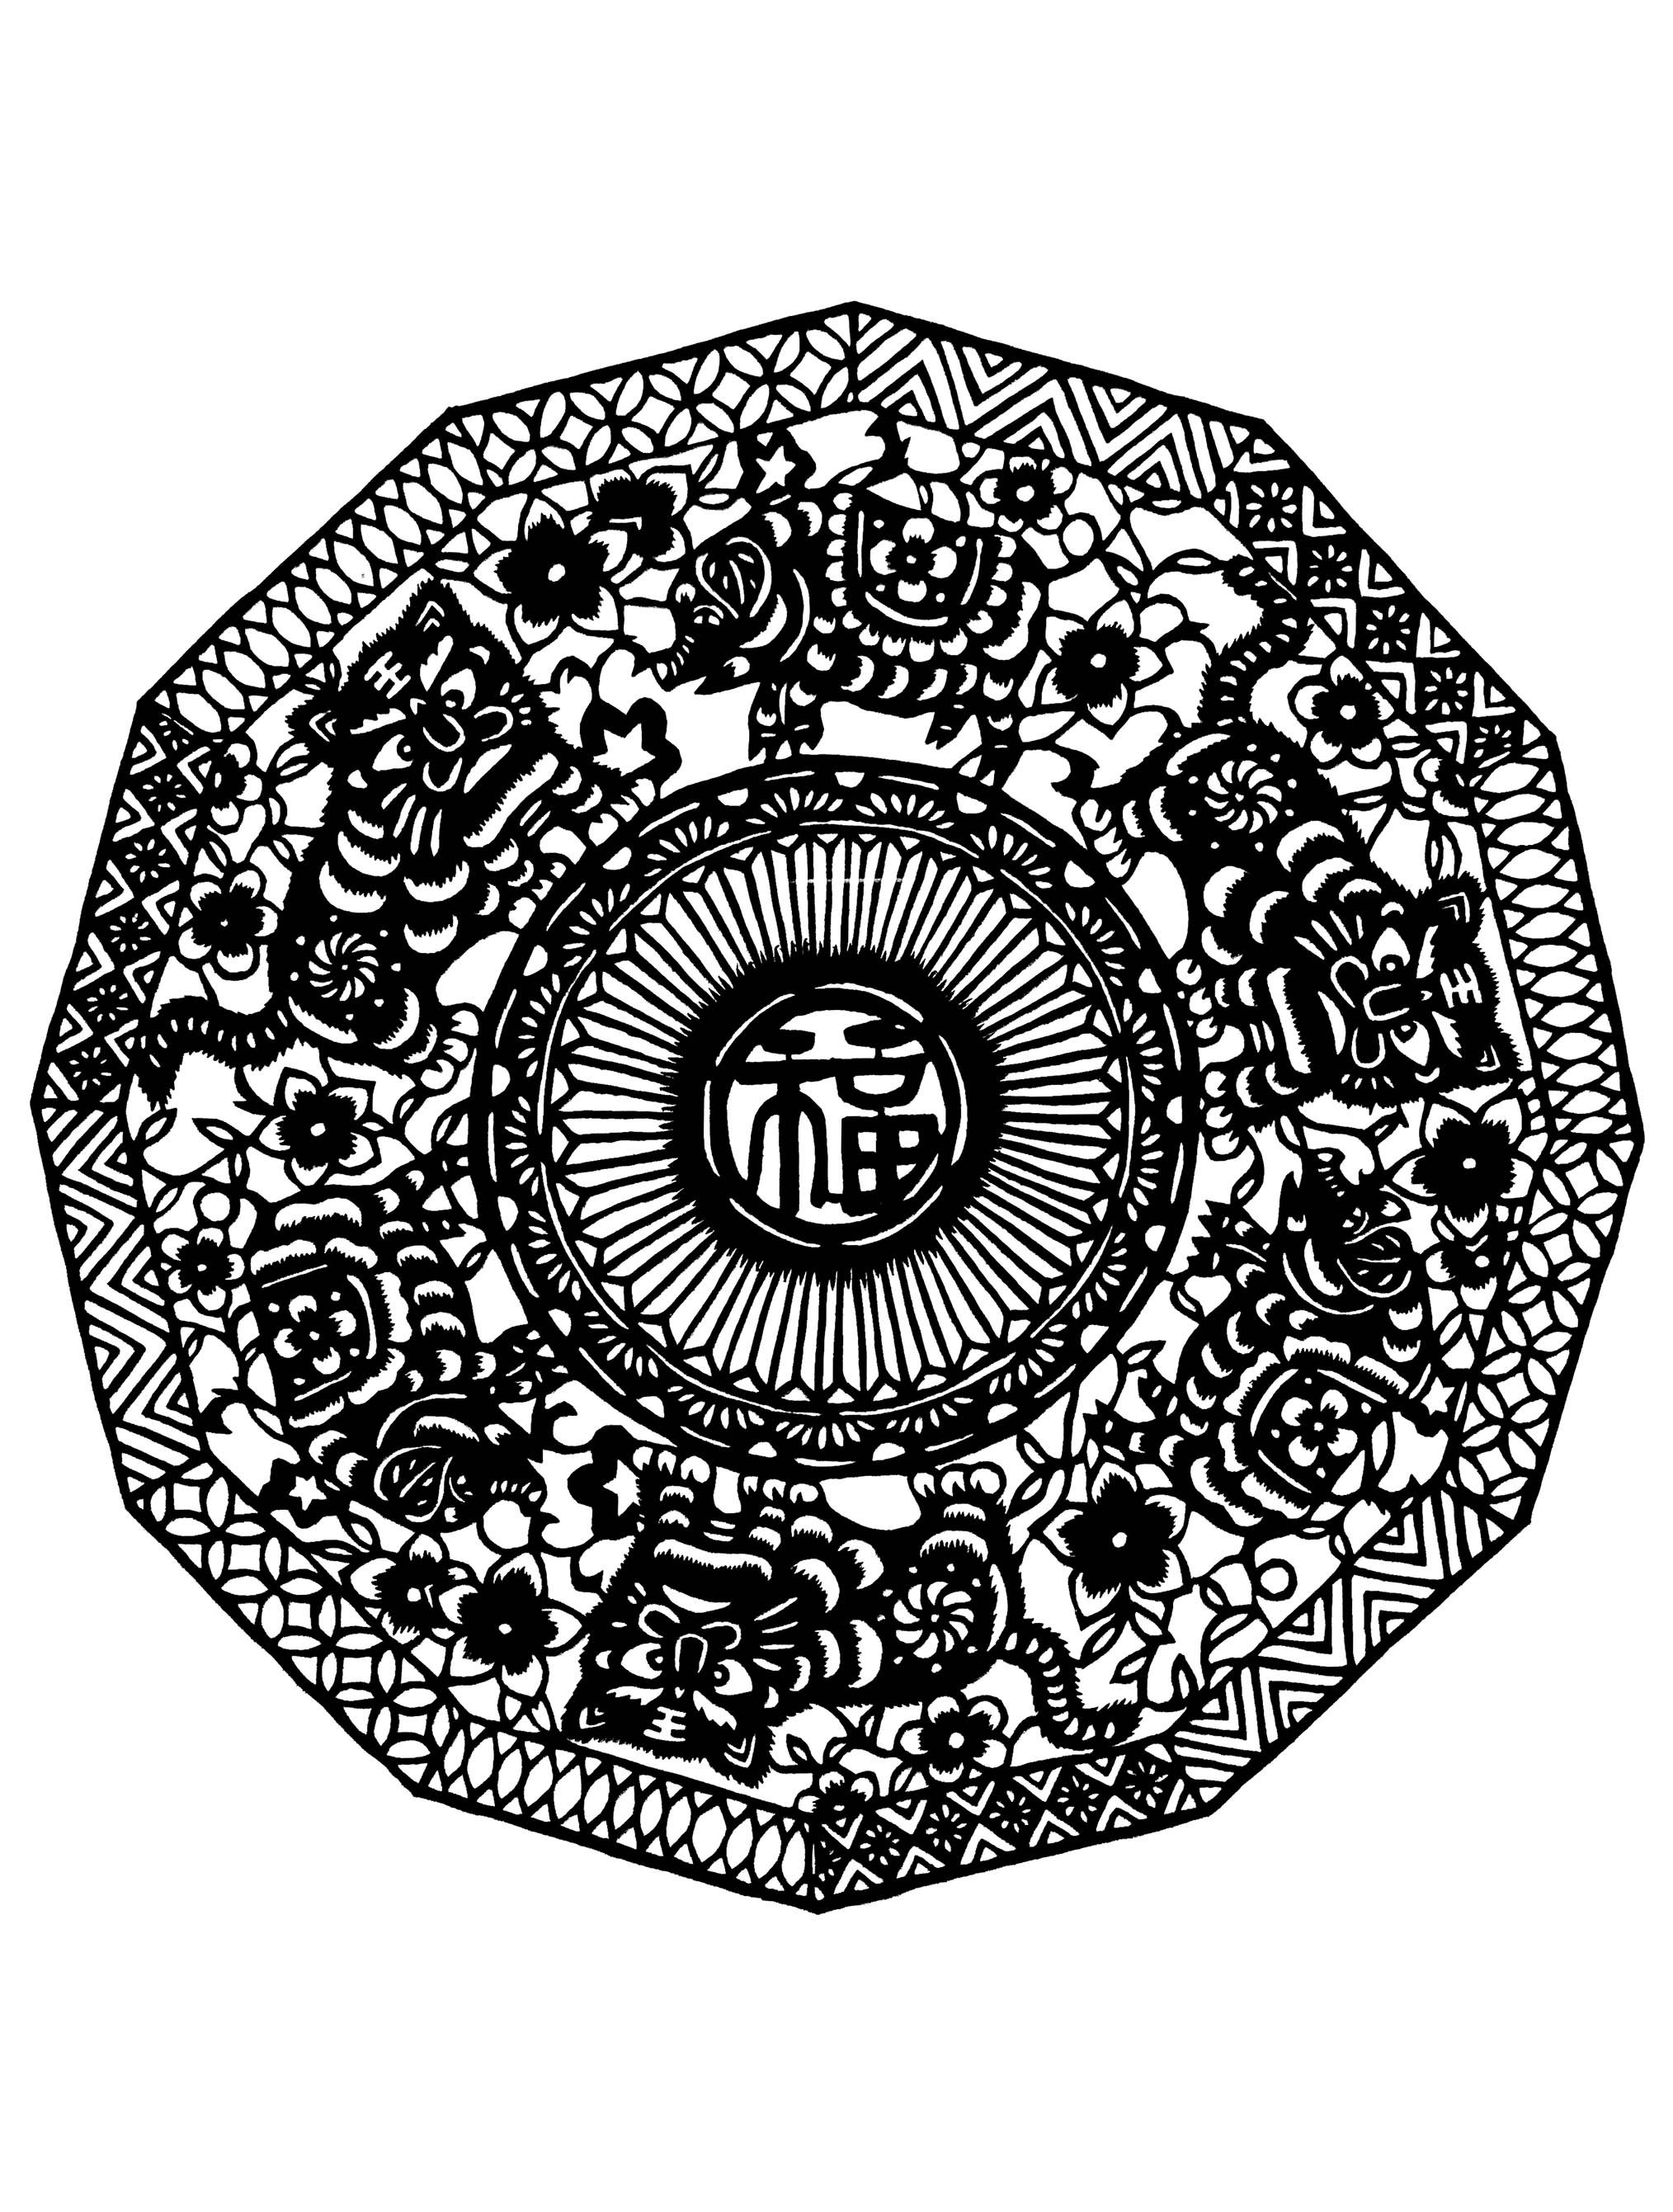 Complex Mandala inspired by China